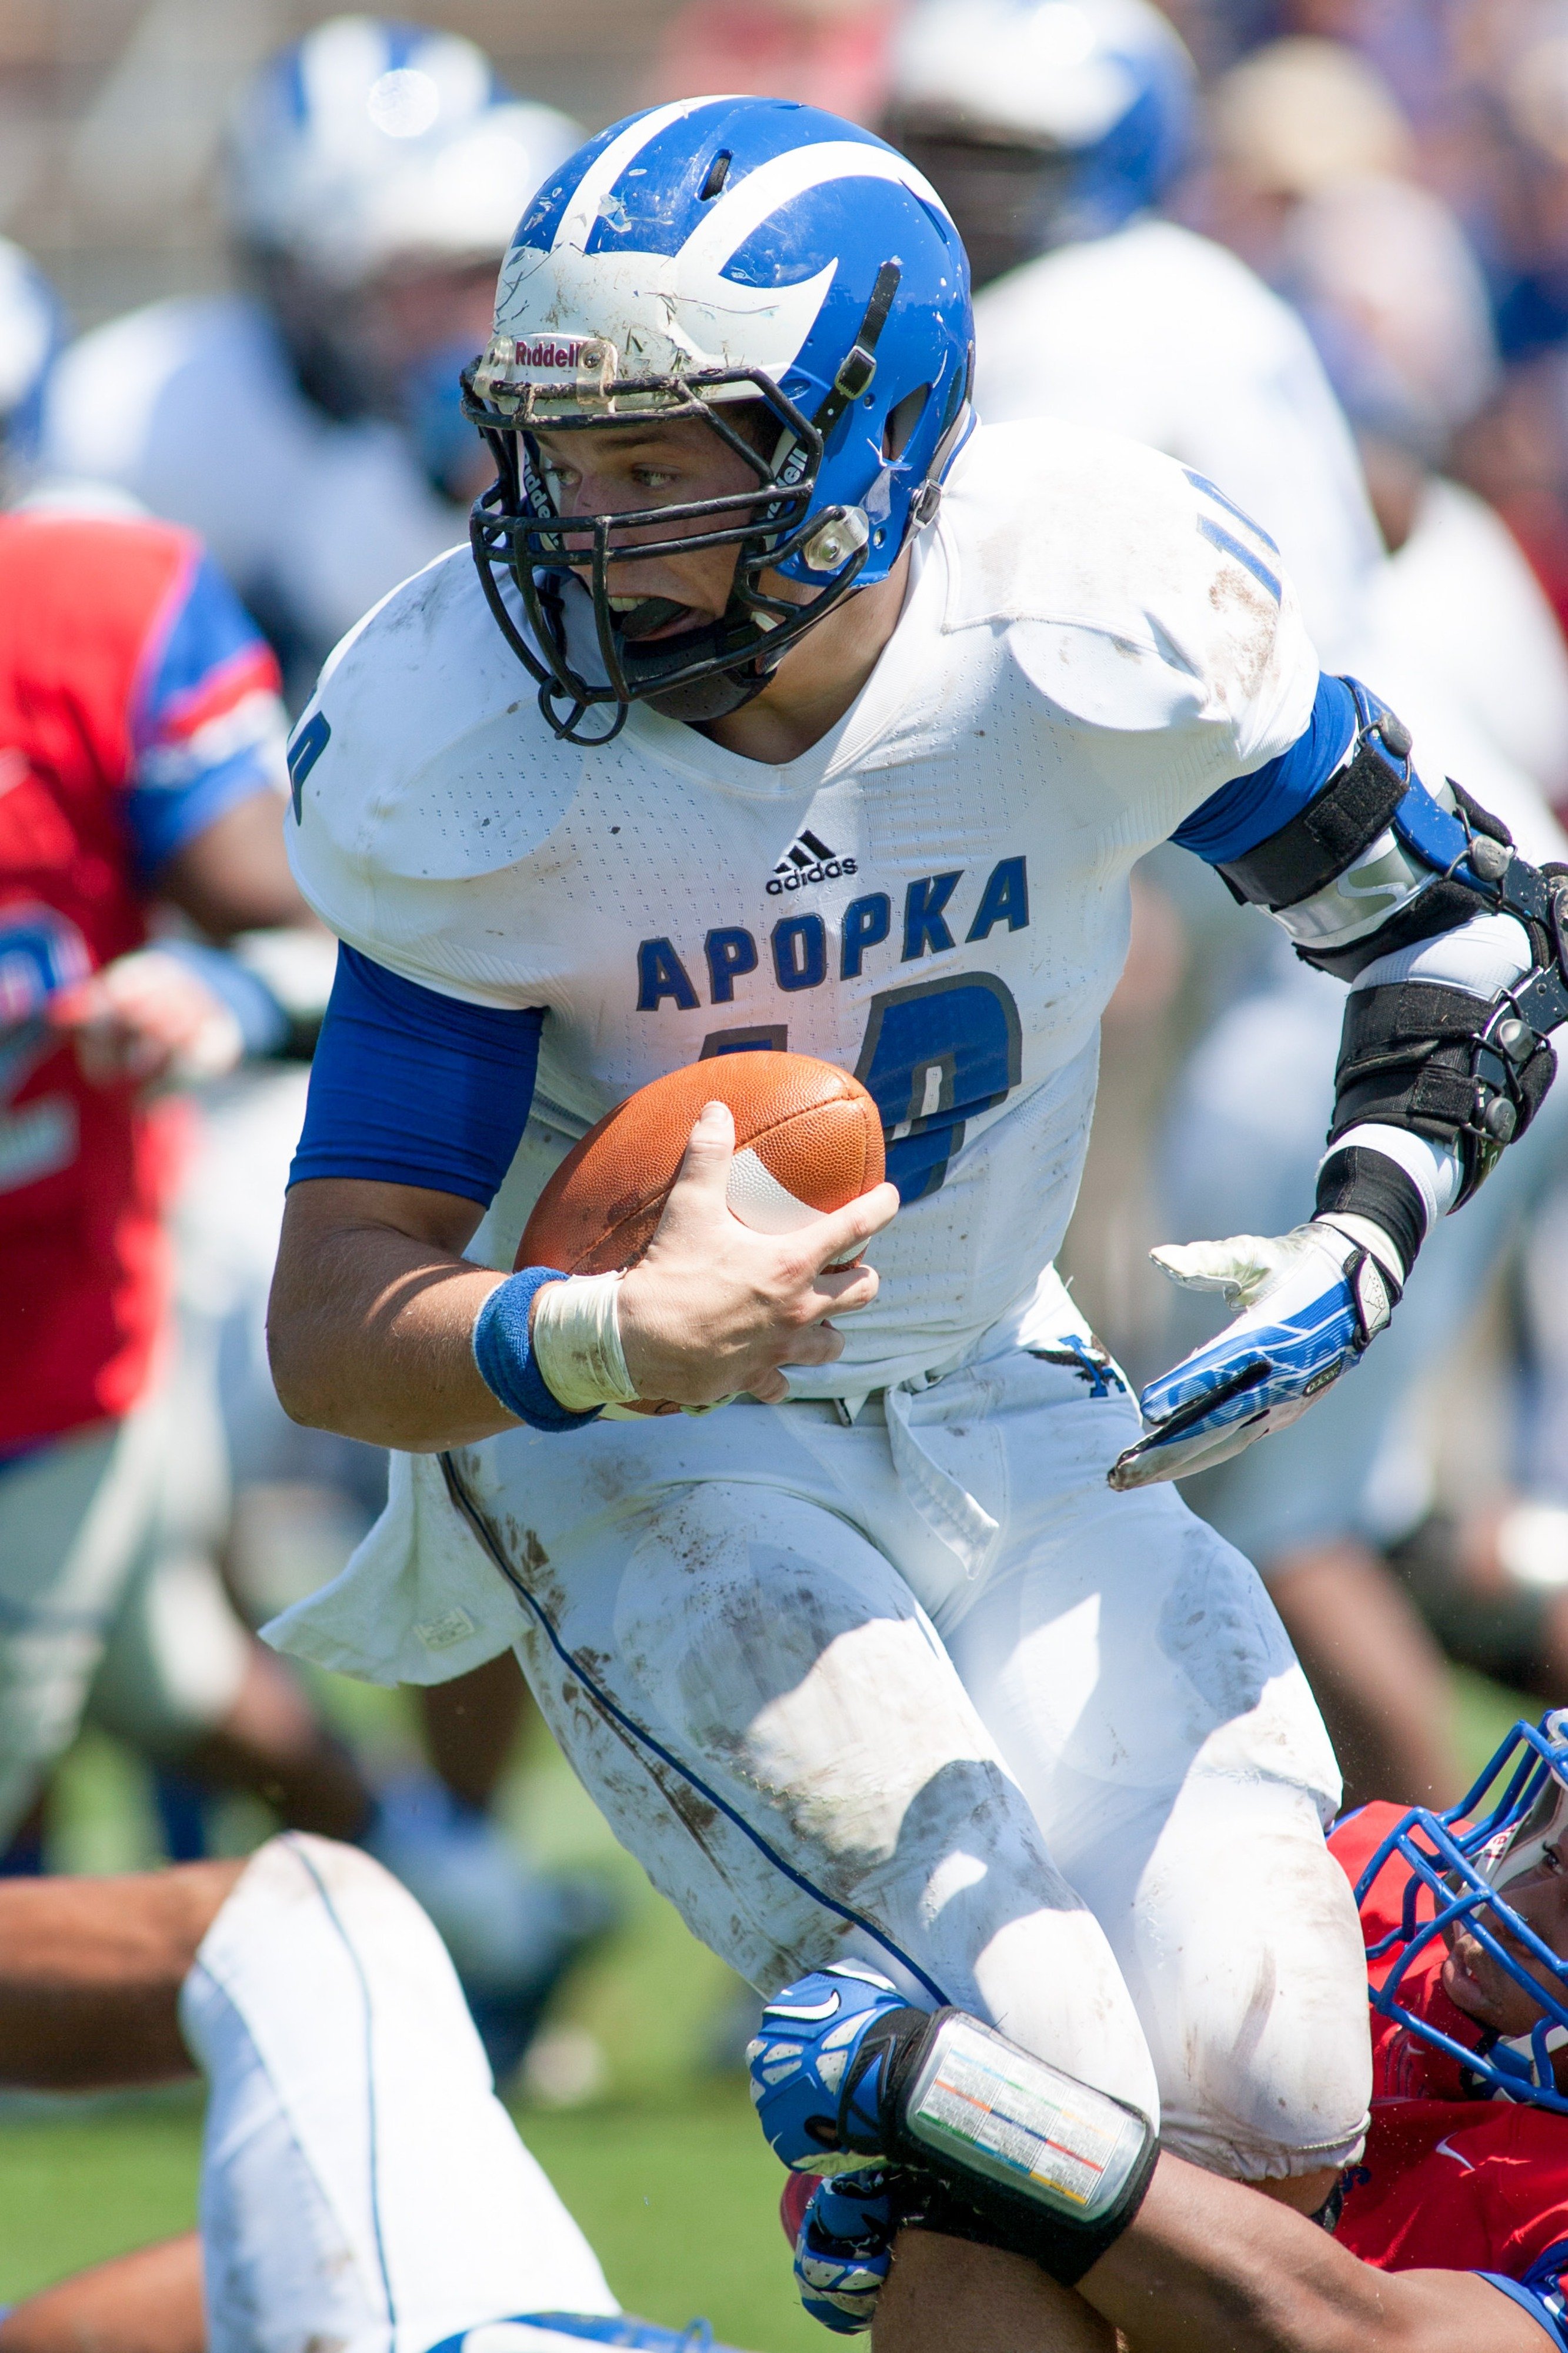 Chandler Cox of Apopka in Florida holds a UK offer for 2015